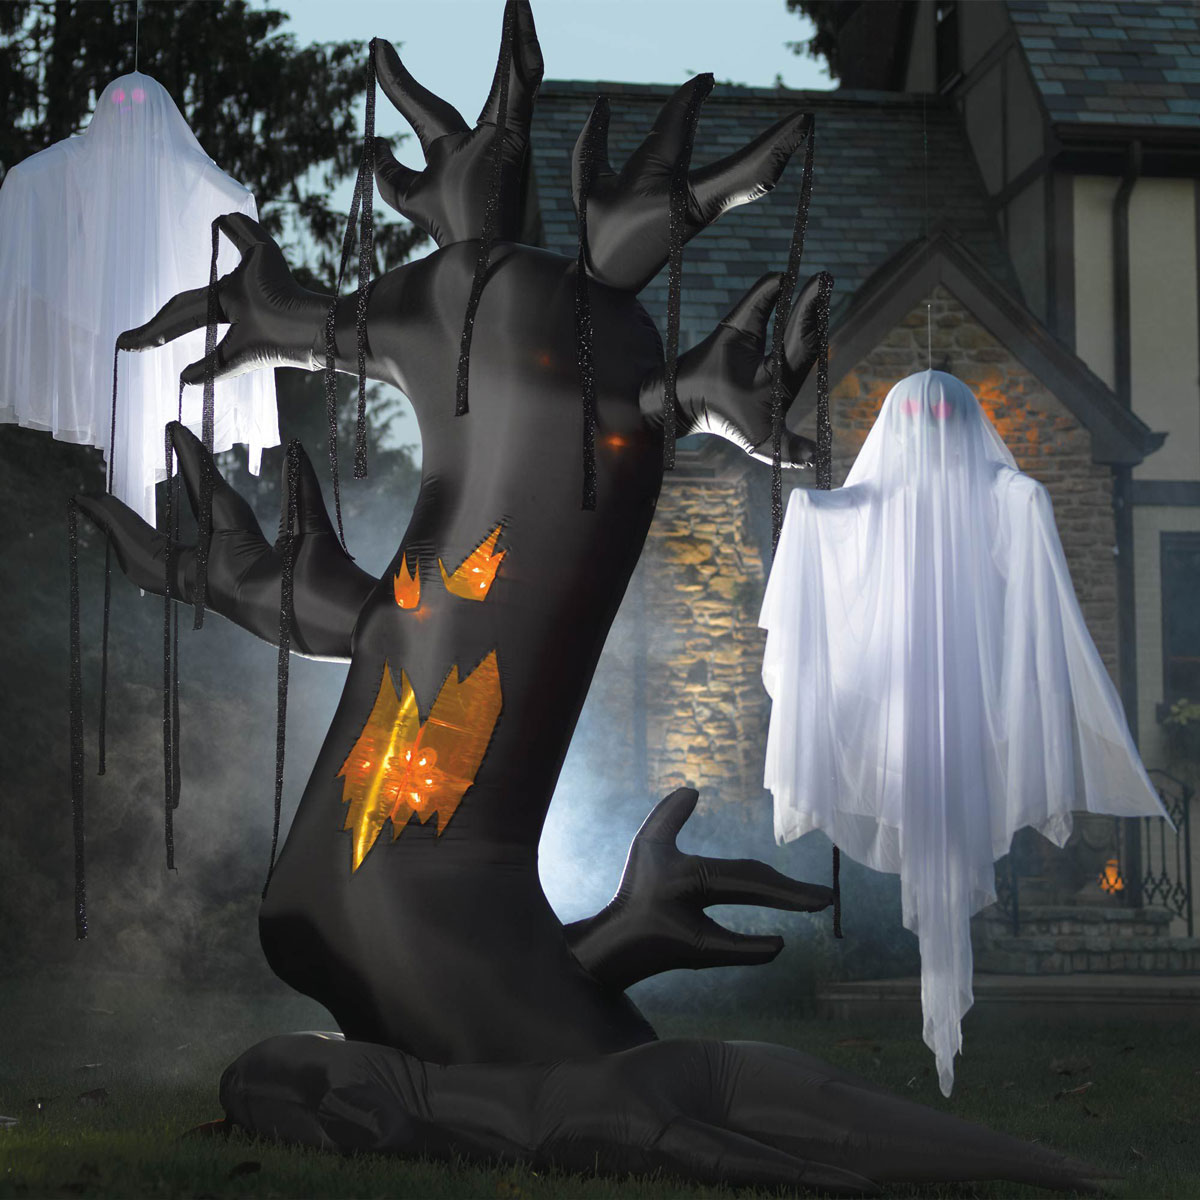 Outdoor inflatable halloween decorations - Giant Inflatable Spooky Tree